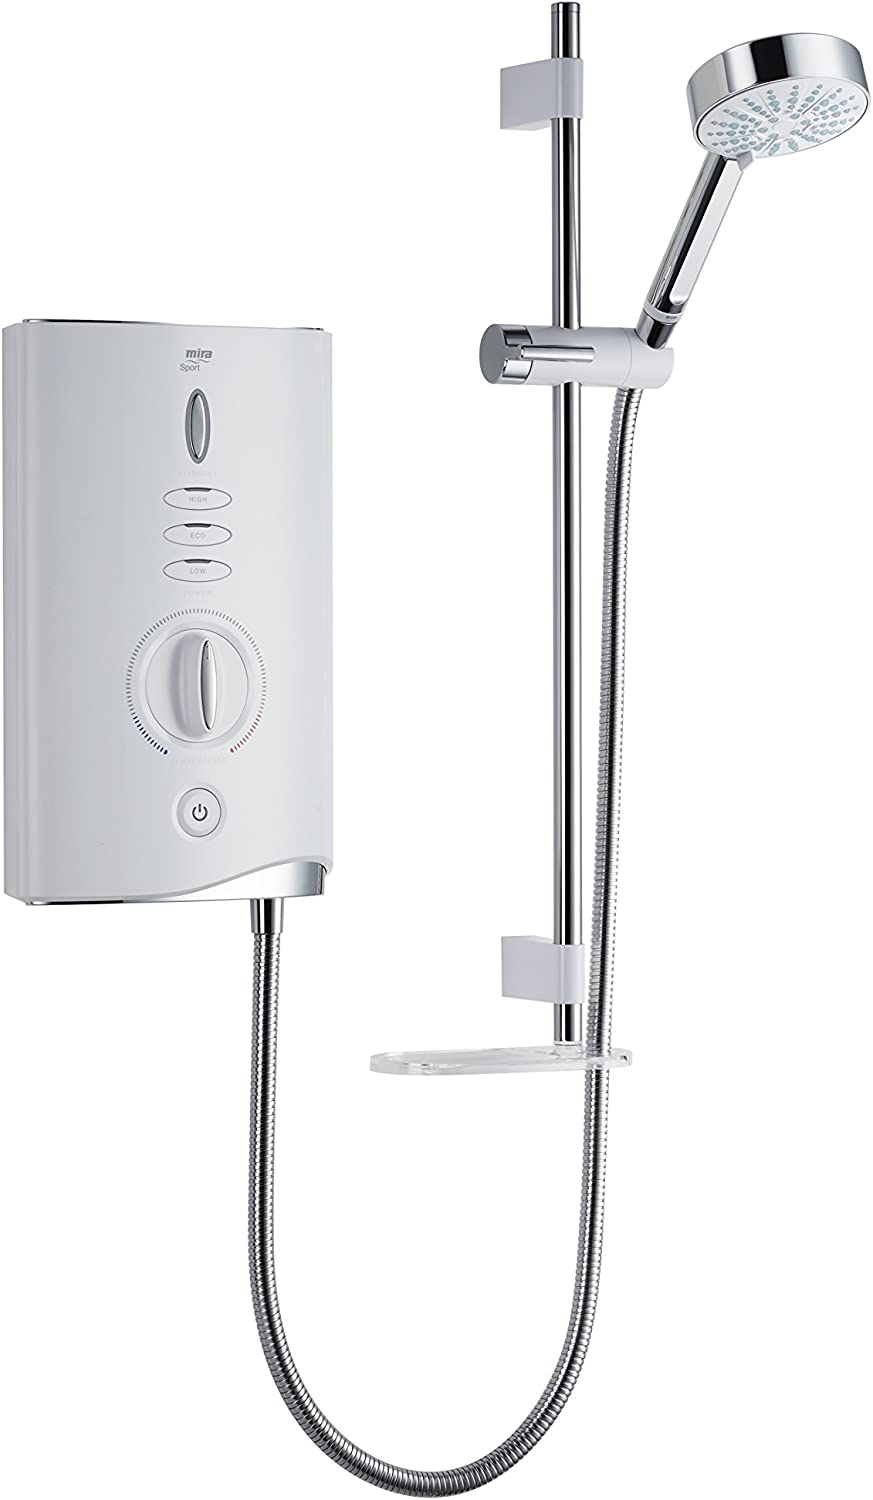 Mira Showers 1.1746.008 Sport Max 10.8 kW Electric Shower - White/Chrome